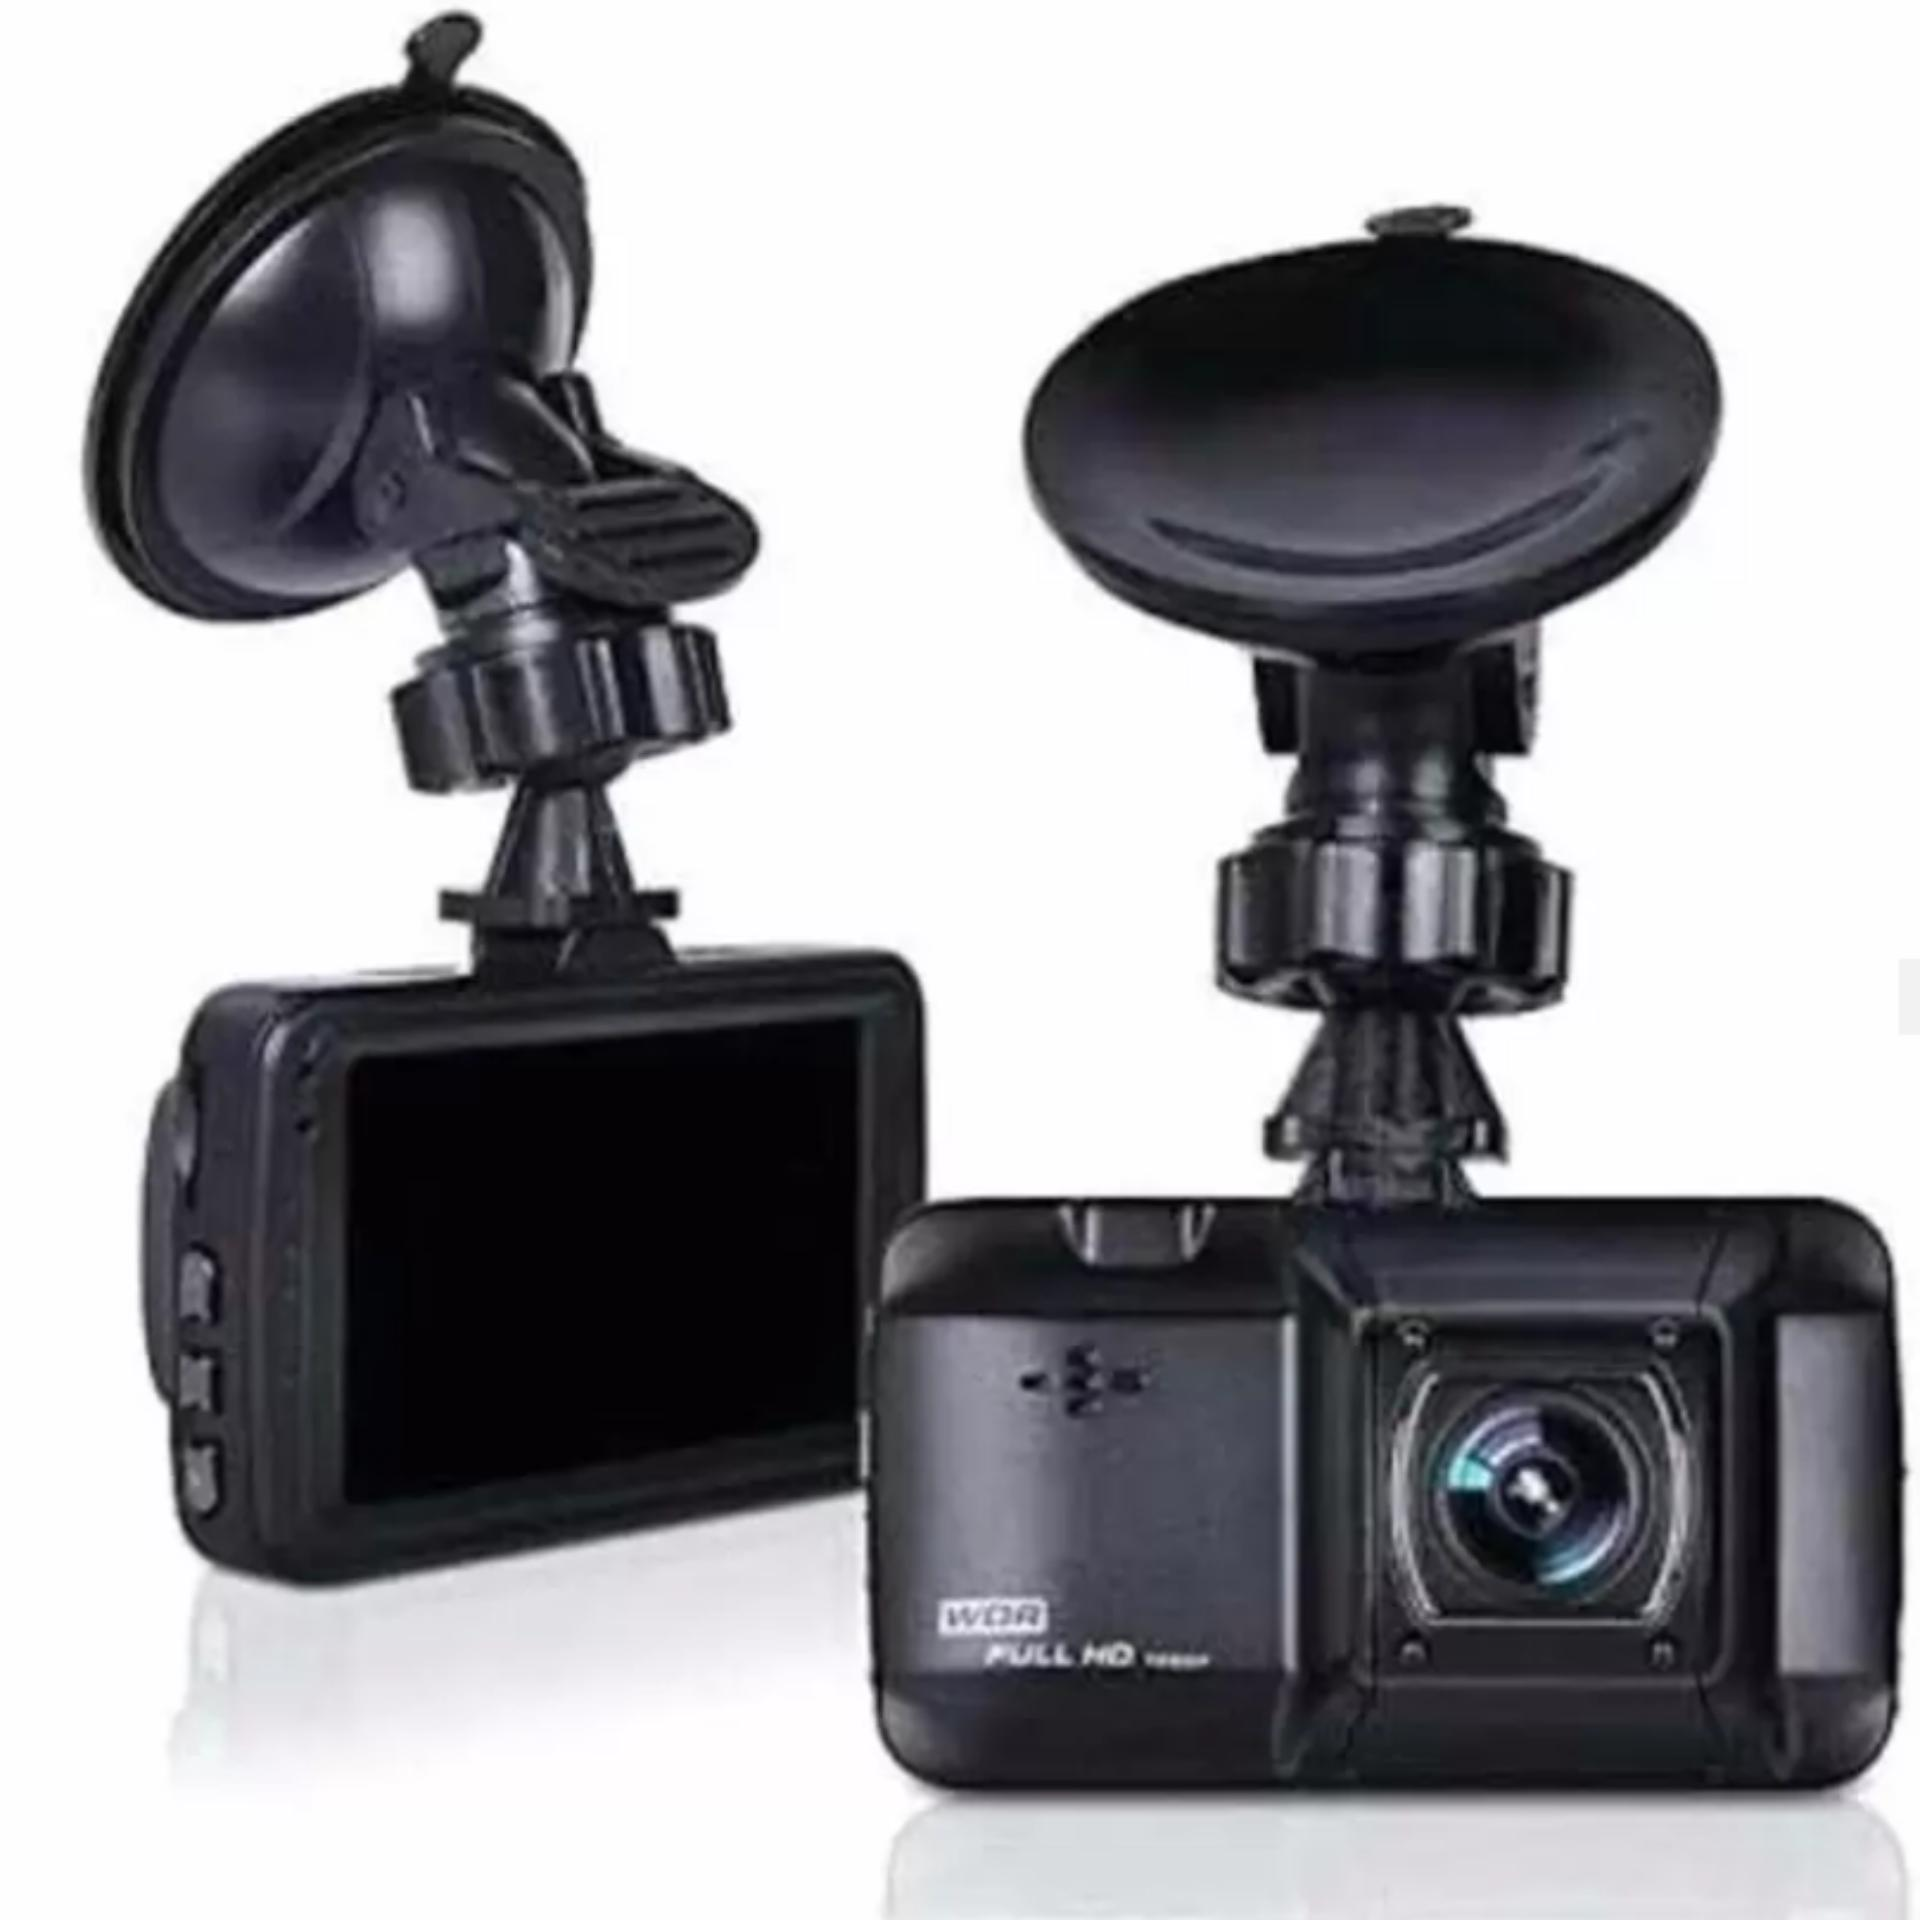 Jason D-1-01 Car DVR 1080P 30FPS 3.0'' Screen WDR Car Plate Stamp IR Night Vision Parking Guard